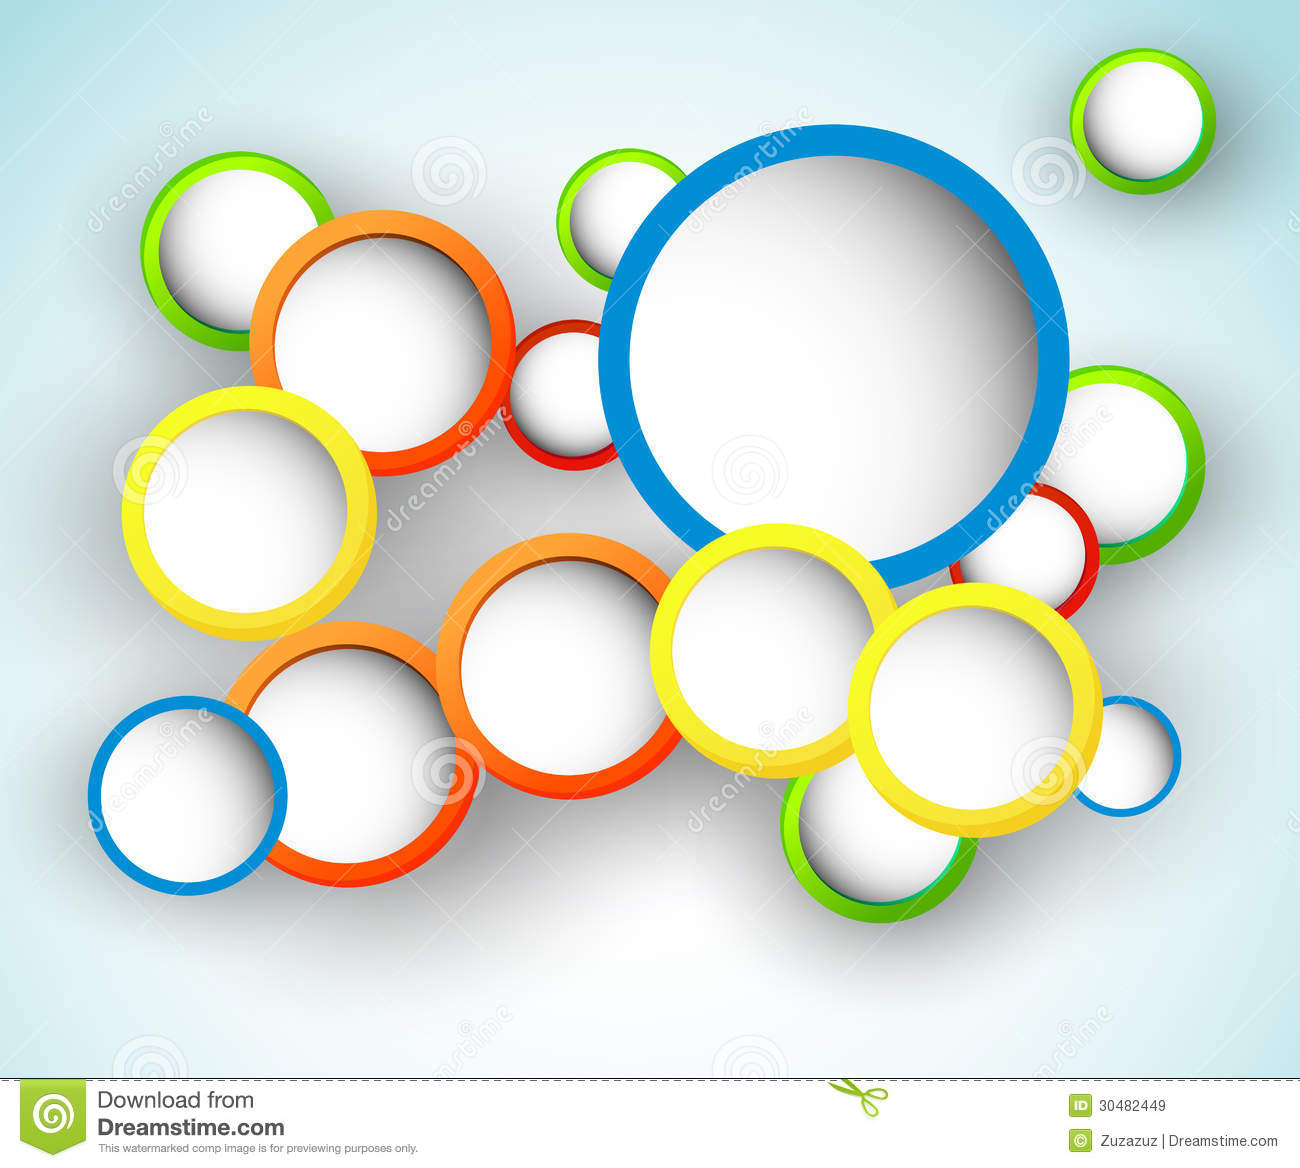 Circle Design Art : Abstract circle art pictures to pin on pinterest daddy